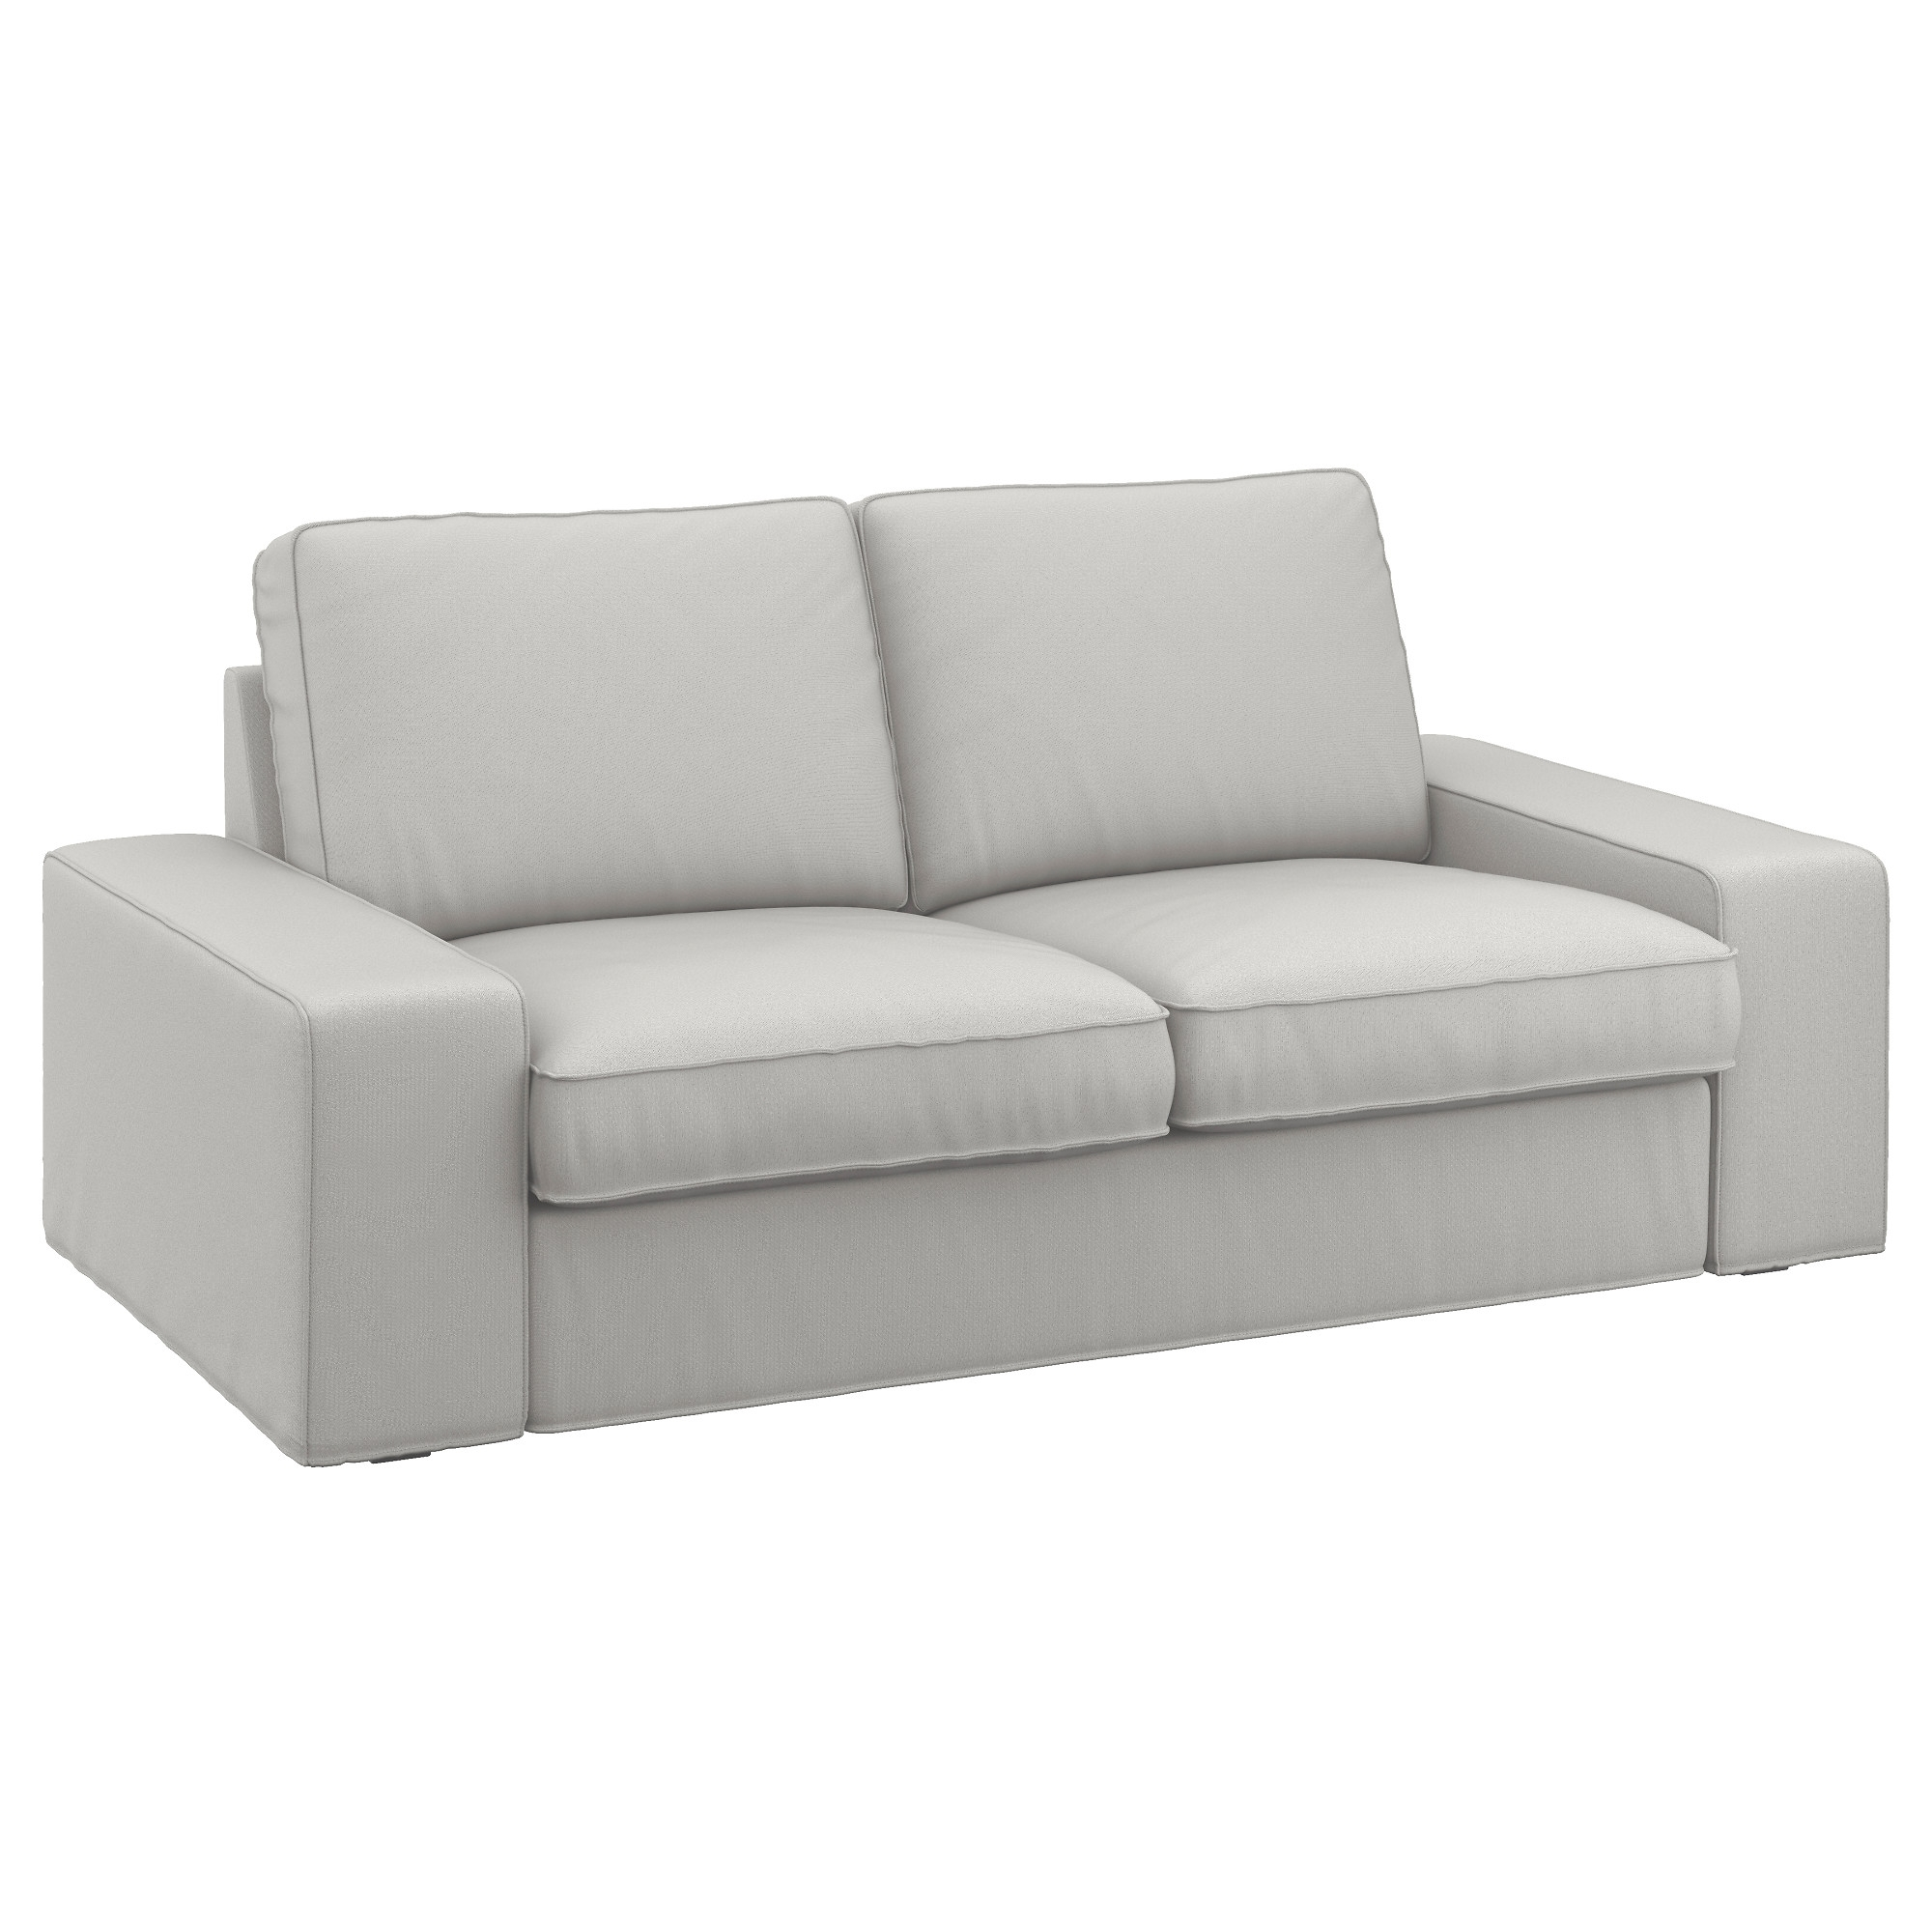 Most Up To Date Ikea Two Seater Sofas Intended For Kivik Two Seat Sofa Ramna Light Grey – Ikea (View 2 of 15)